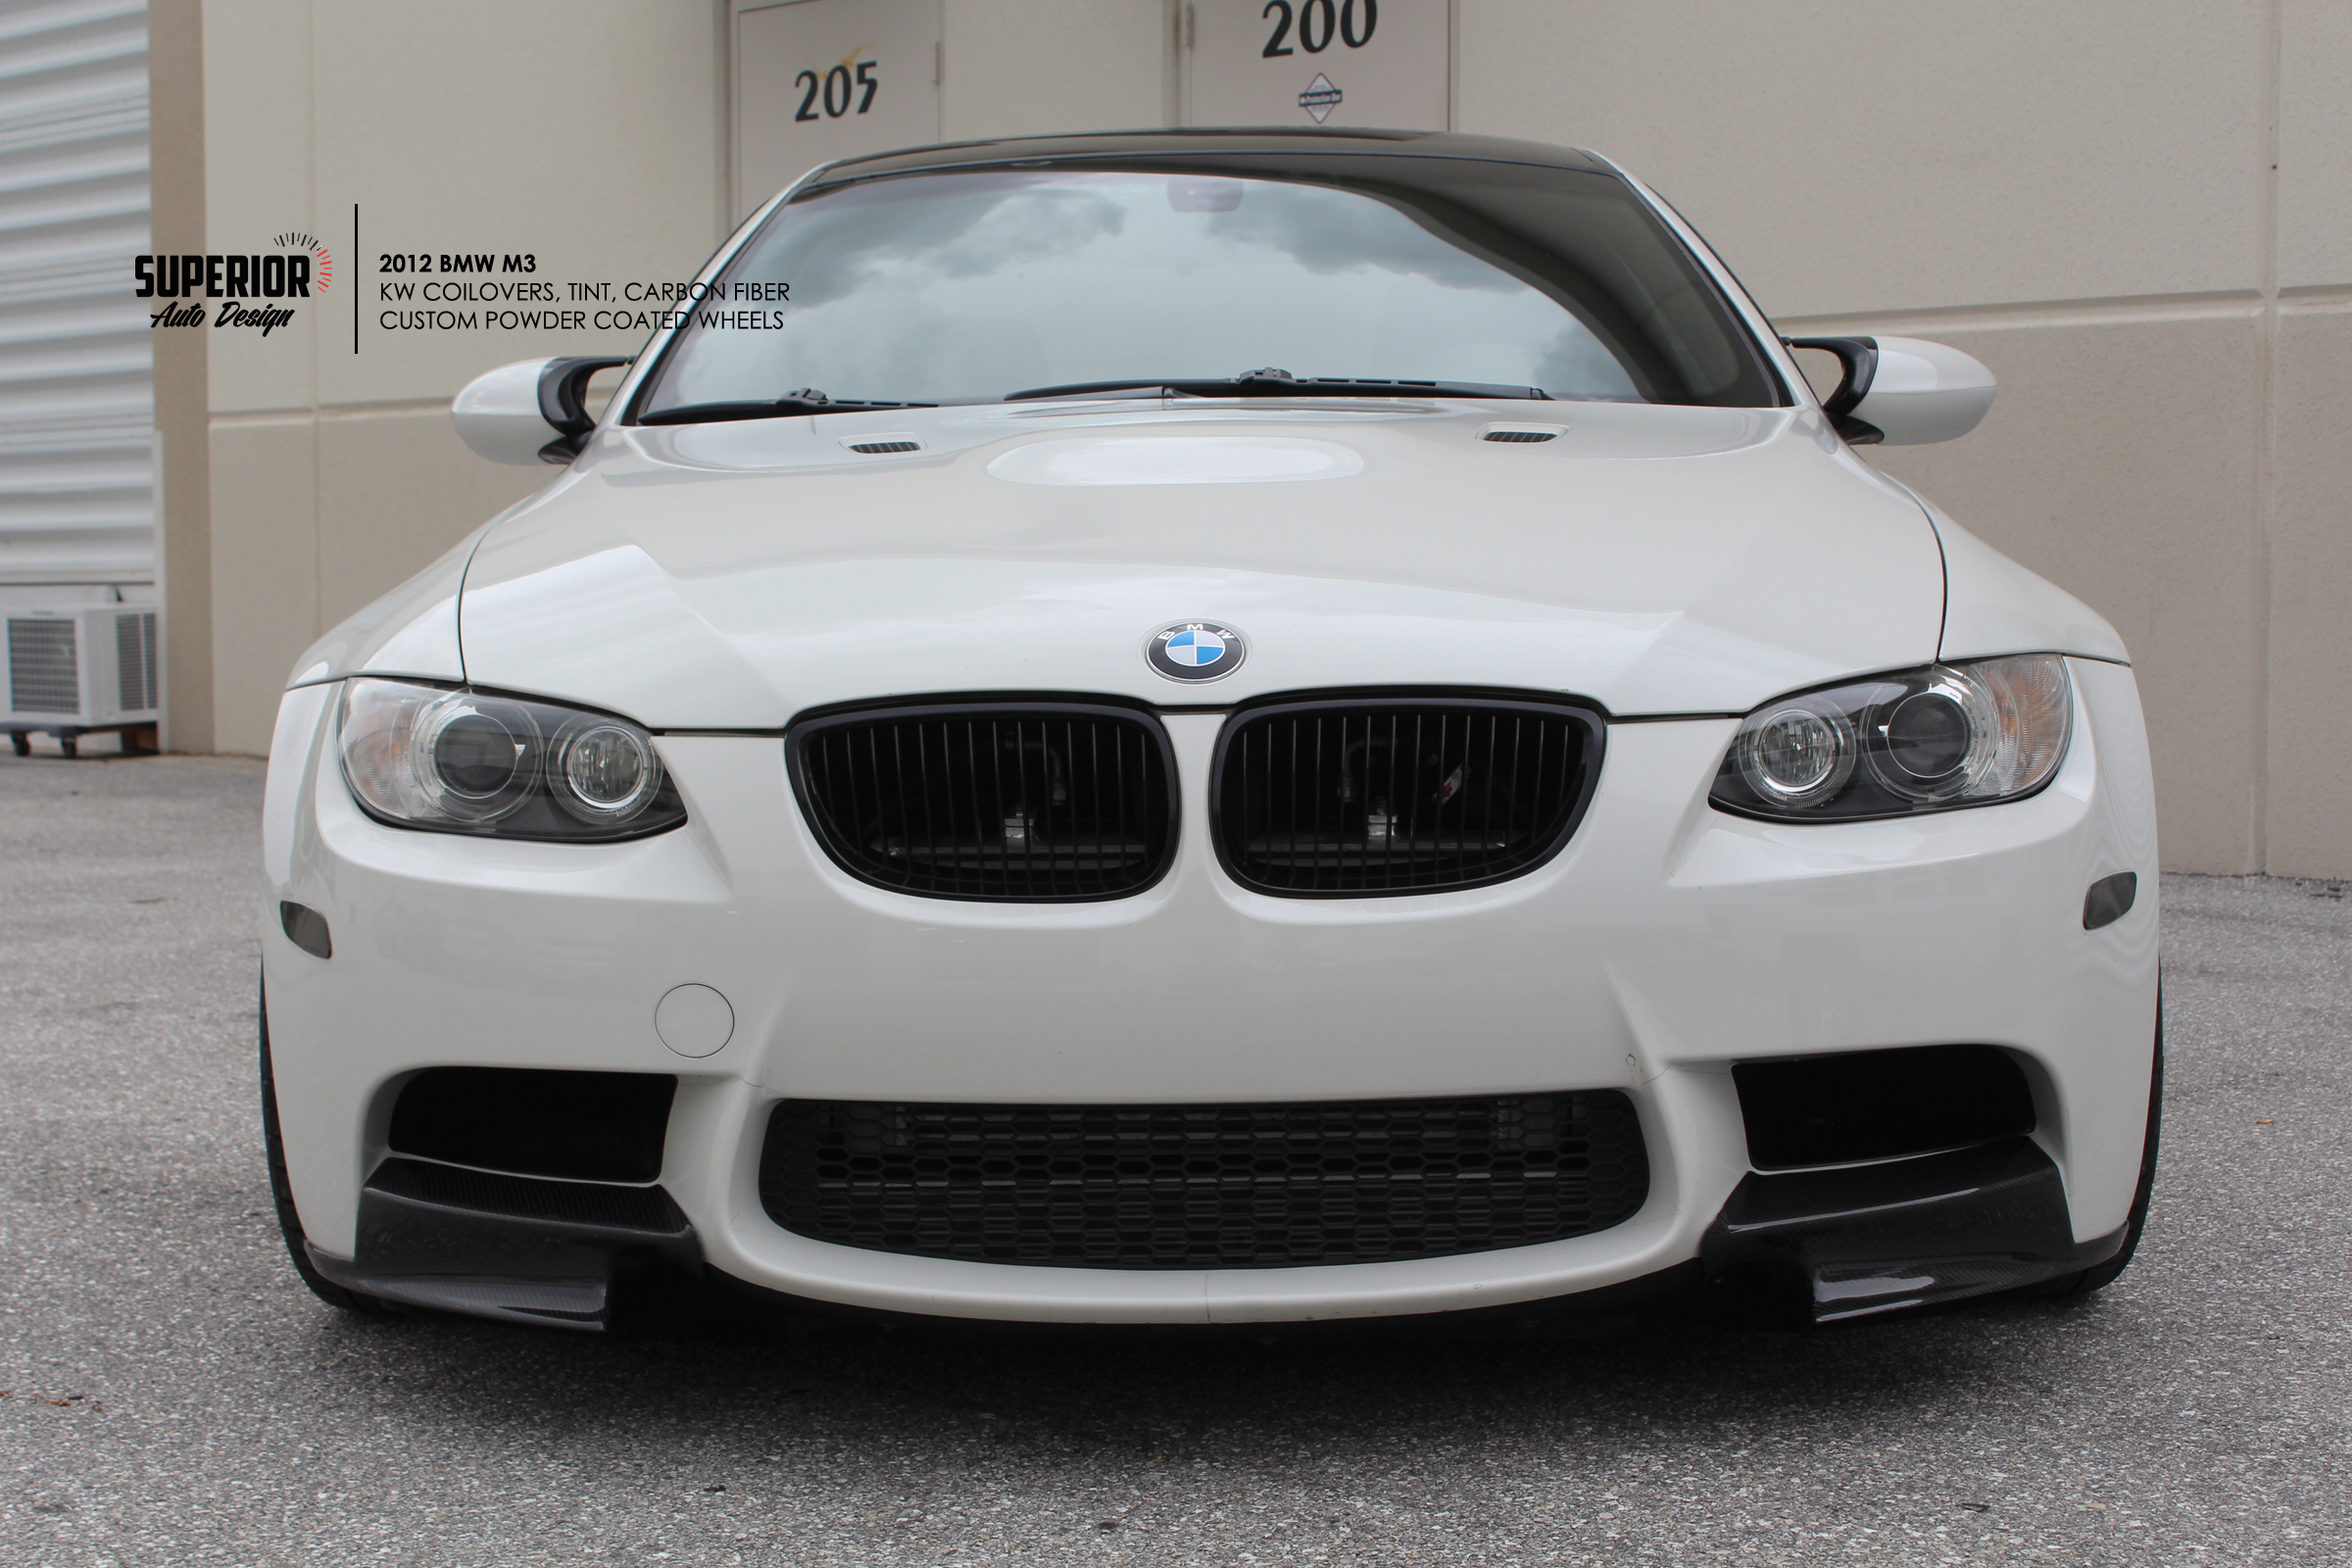 BMW M3 CARBON INSTALL SUPERIOR AUTO DESIGN 2